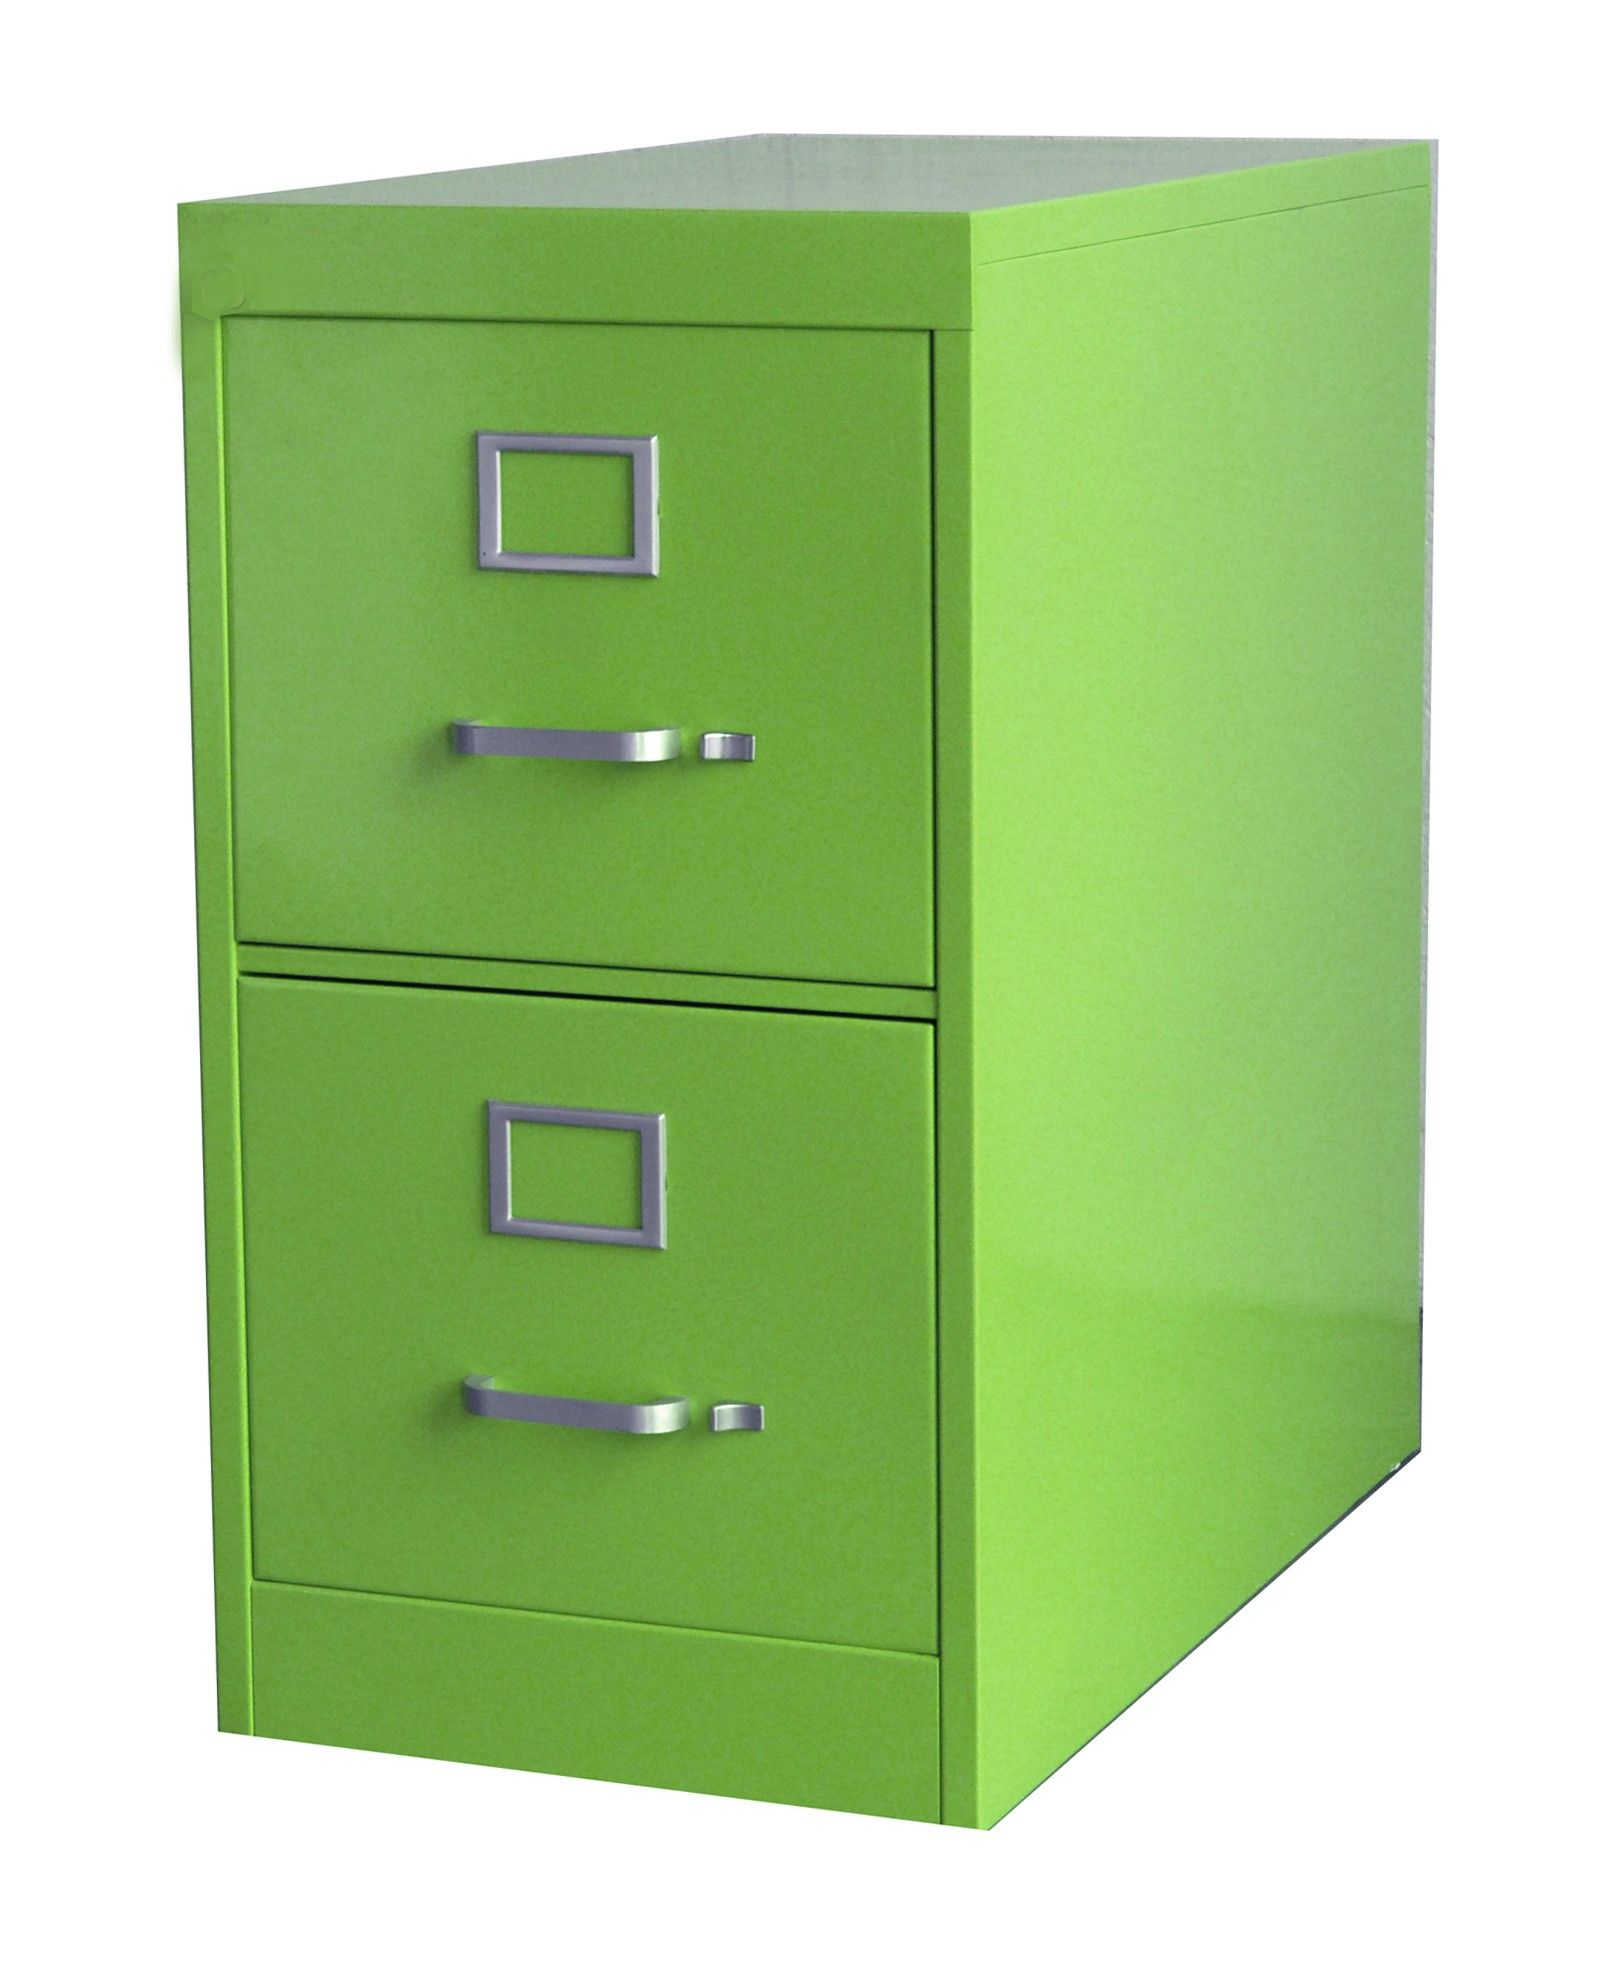 File It This Company Brings Filing To A Whole New Level Of Style They Can Customize These Sy Metal Cabinets Any Color You Want